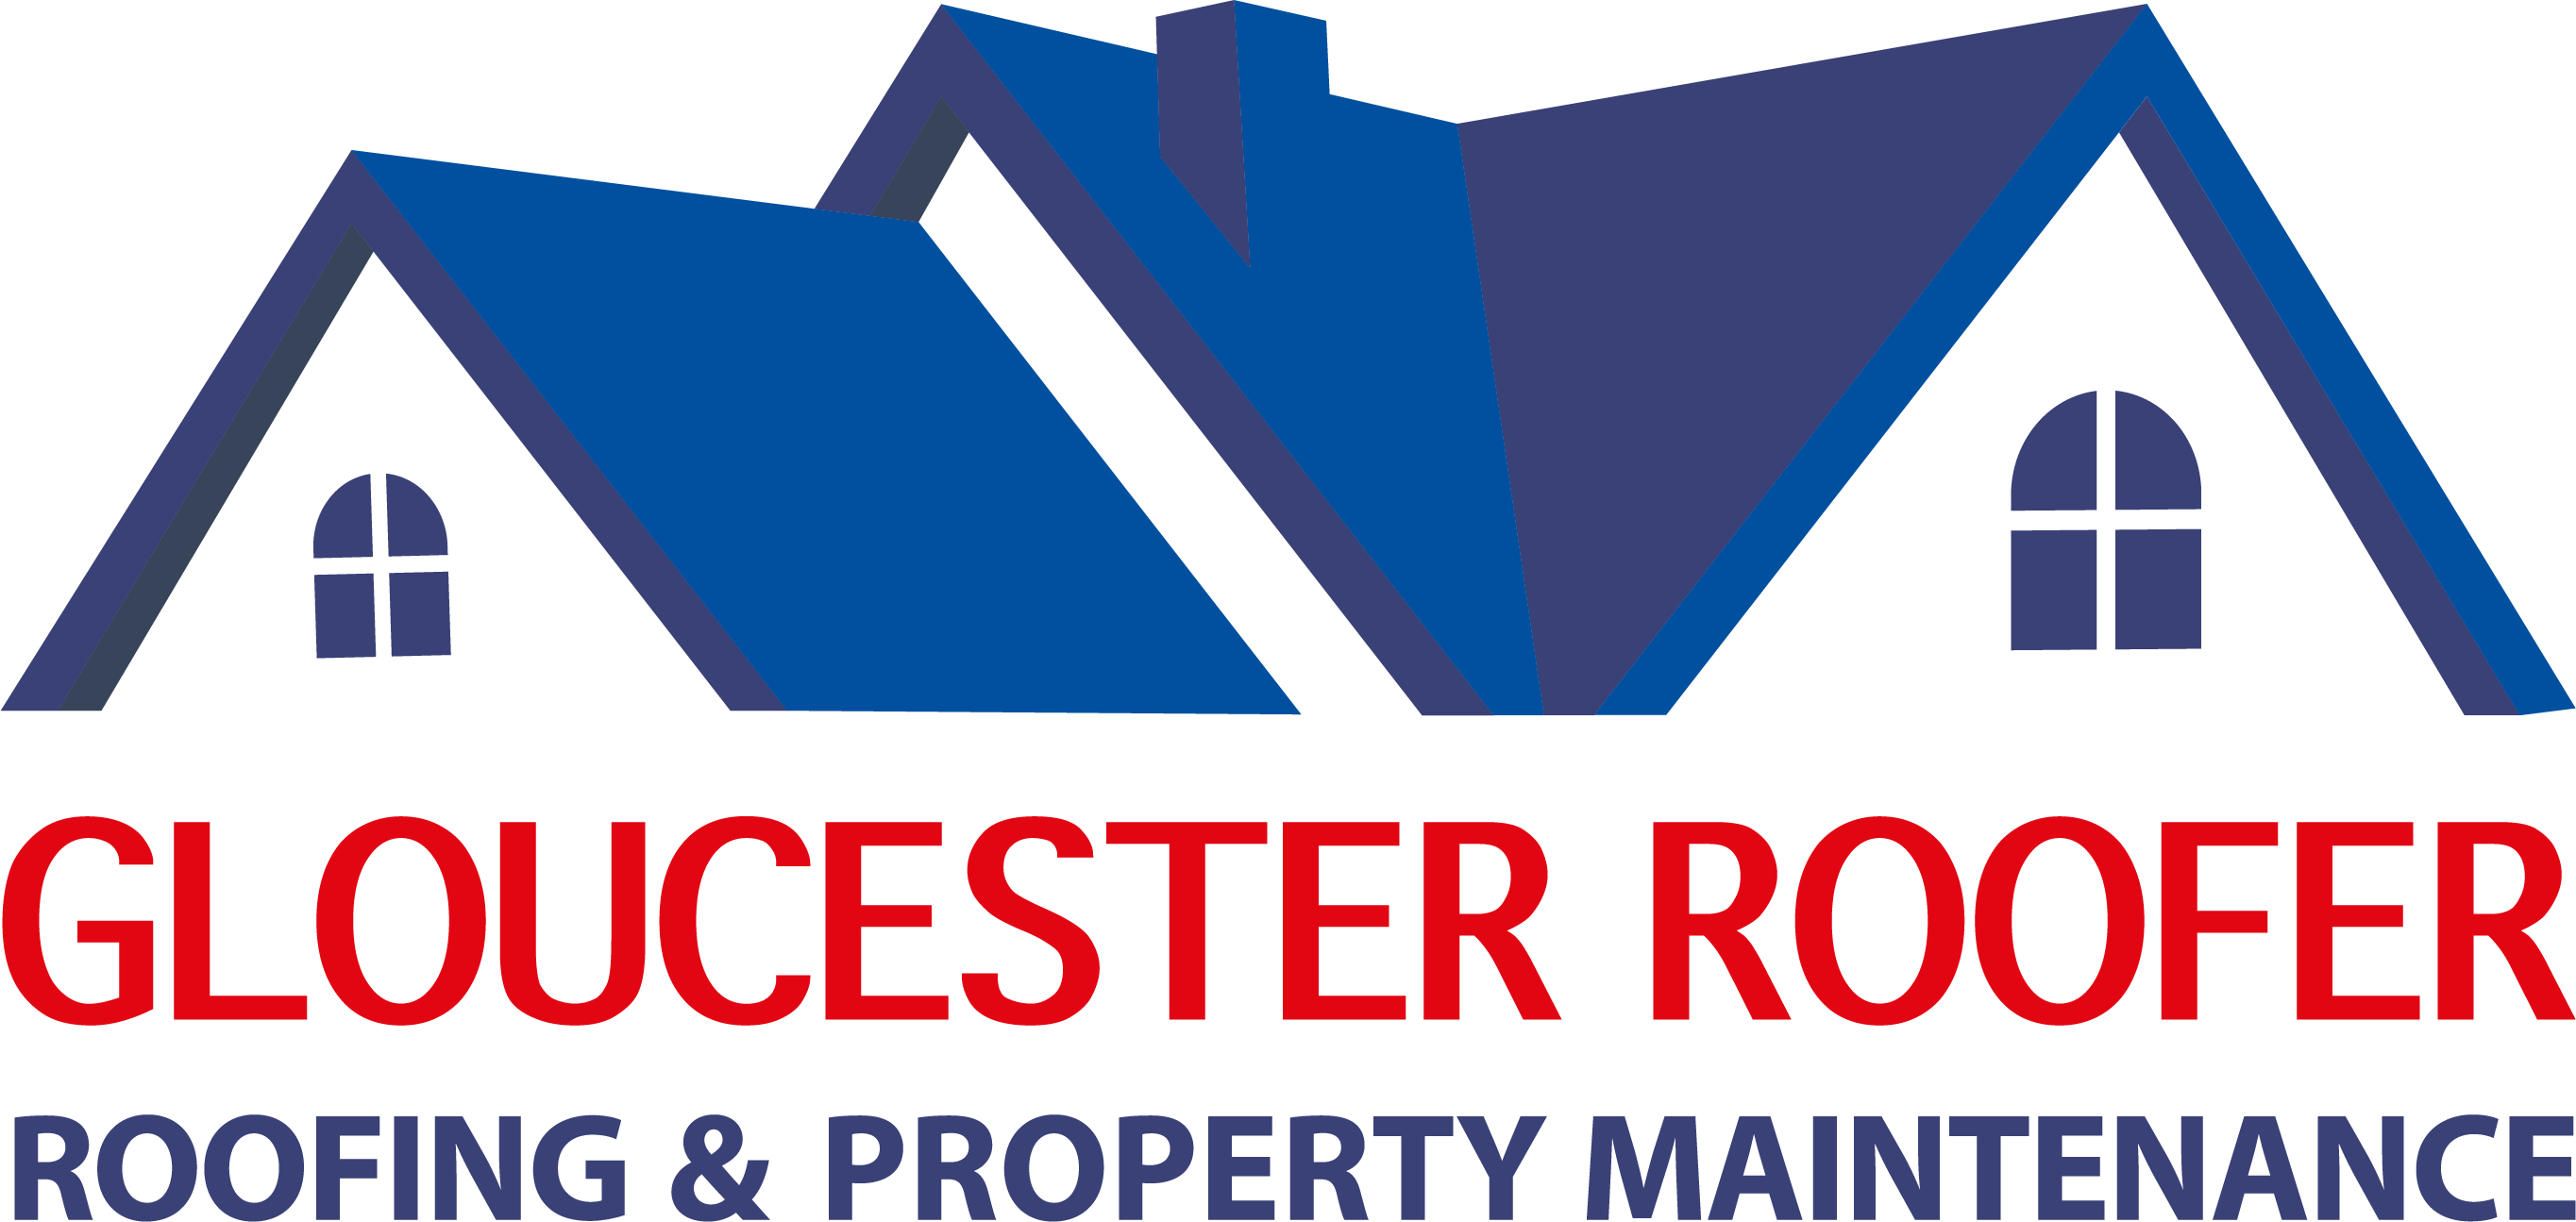 Gloucester Roofer | Roofing & Property Maintenance Services